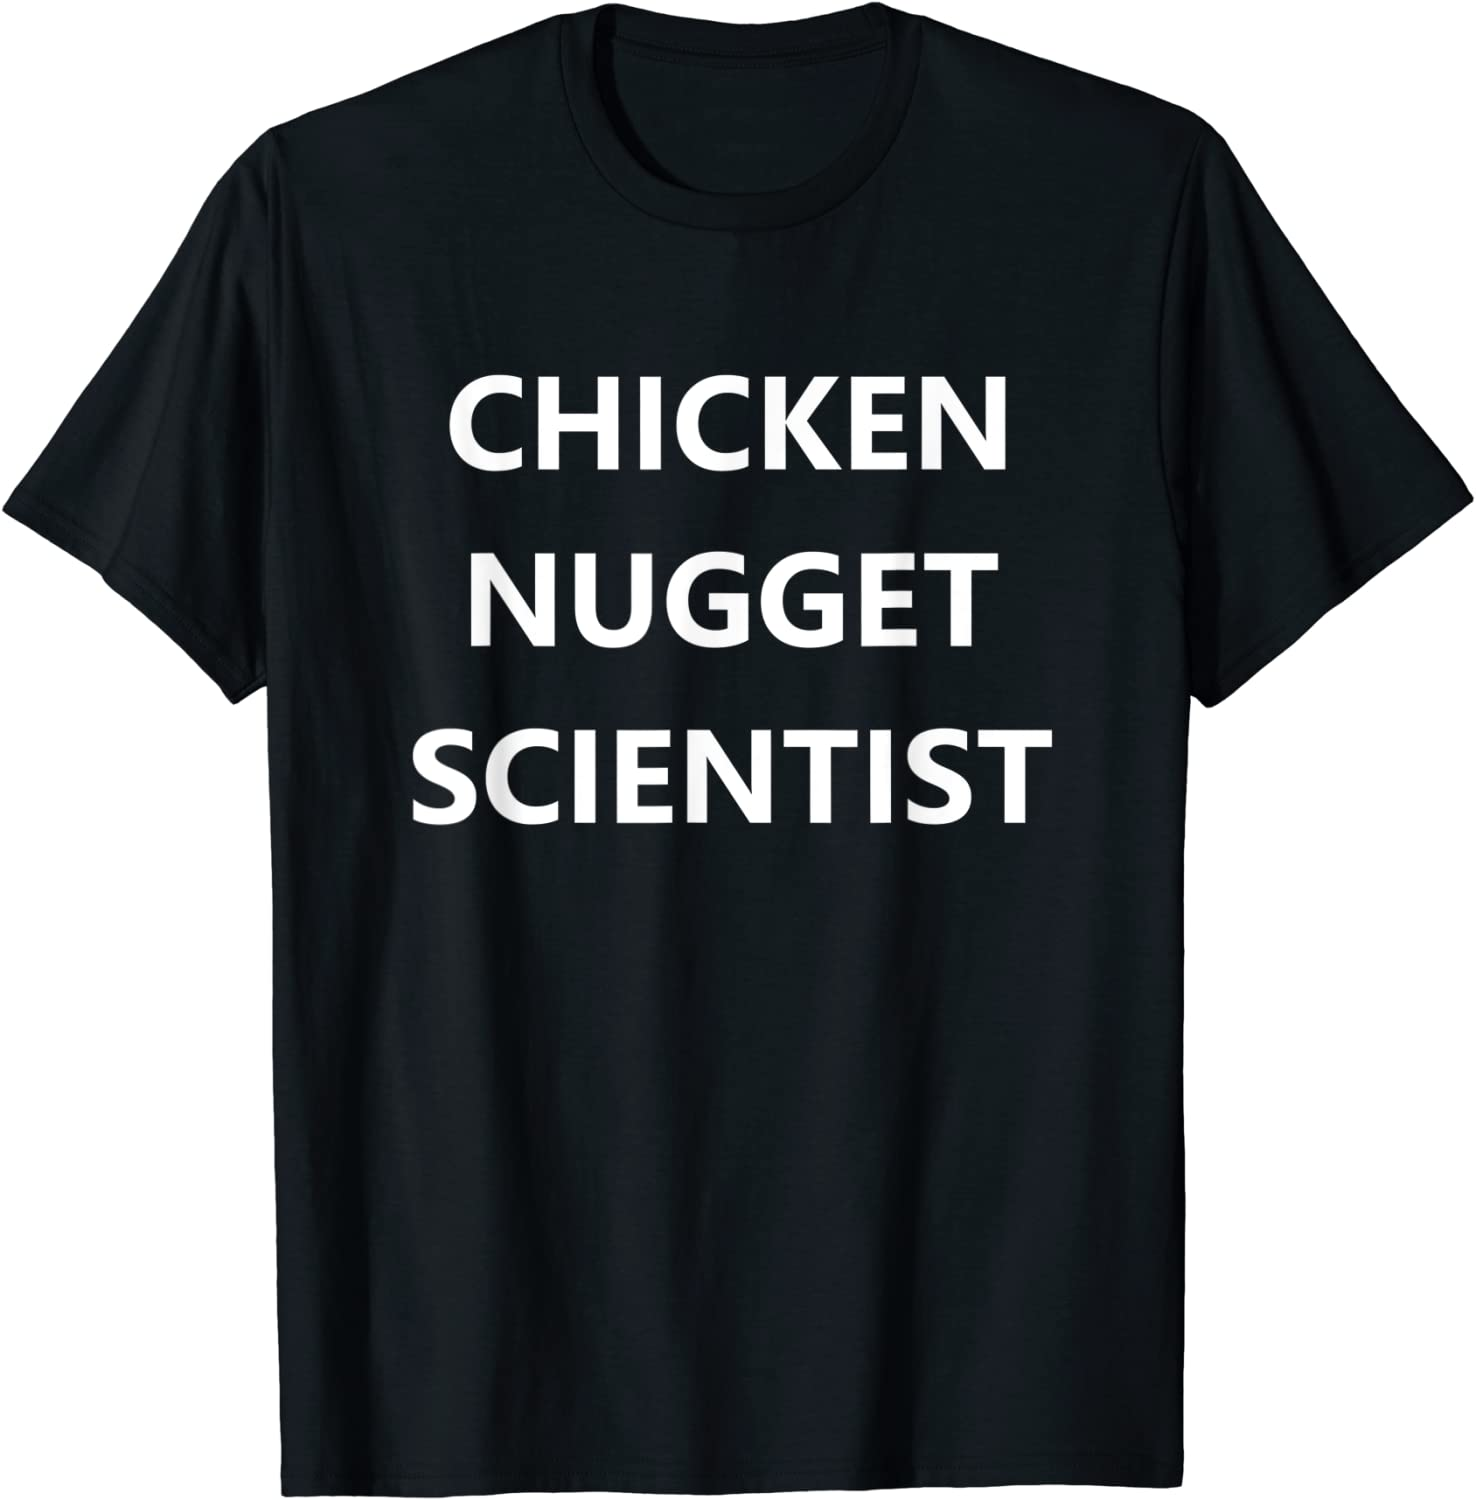 Chicken Nugget Scientist Shirt Funny Gag Gift Junk Food Tee